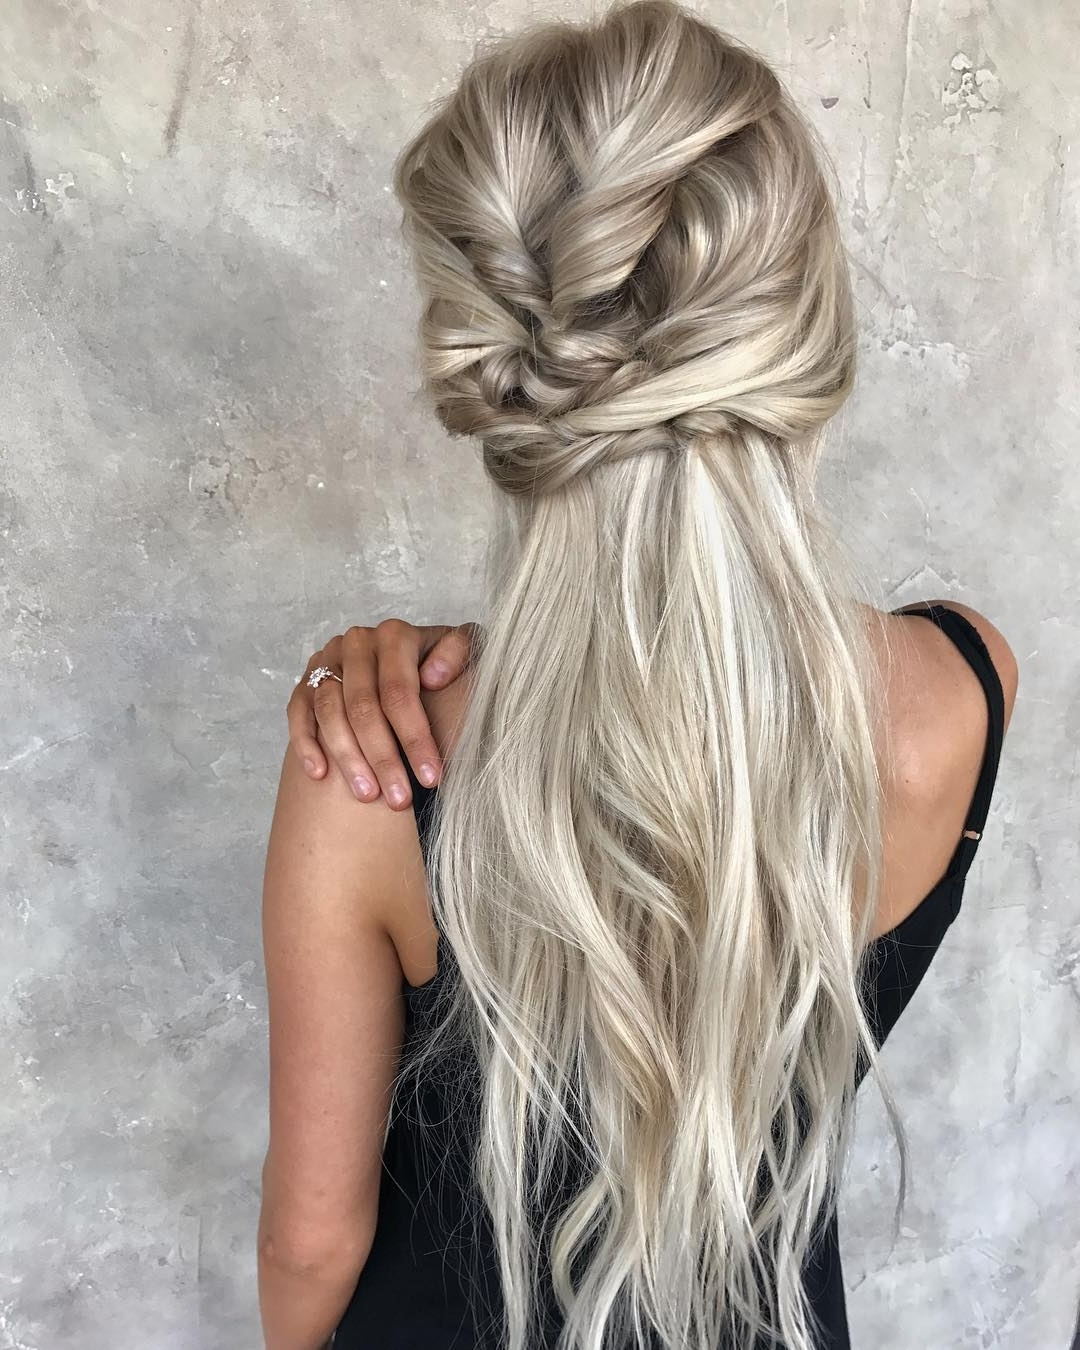 10 Messy Braided Long Hairstyle Ideas For Weddings & Vacations In Most Recently Released Ash Blonde Half Up Hairstyles (View 2 of 20)